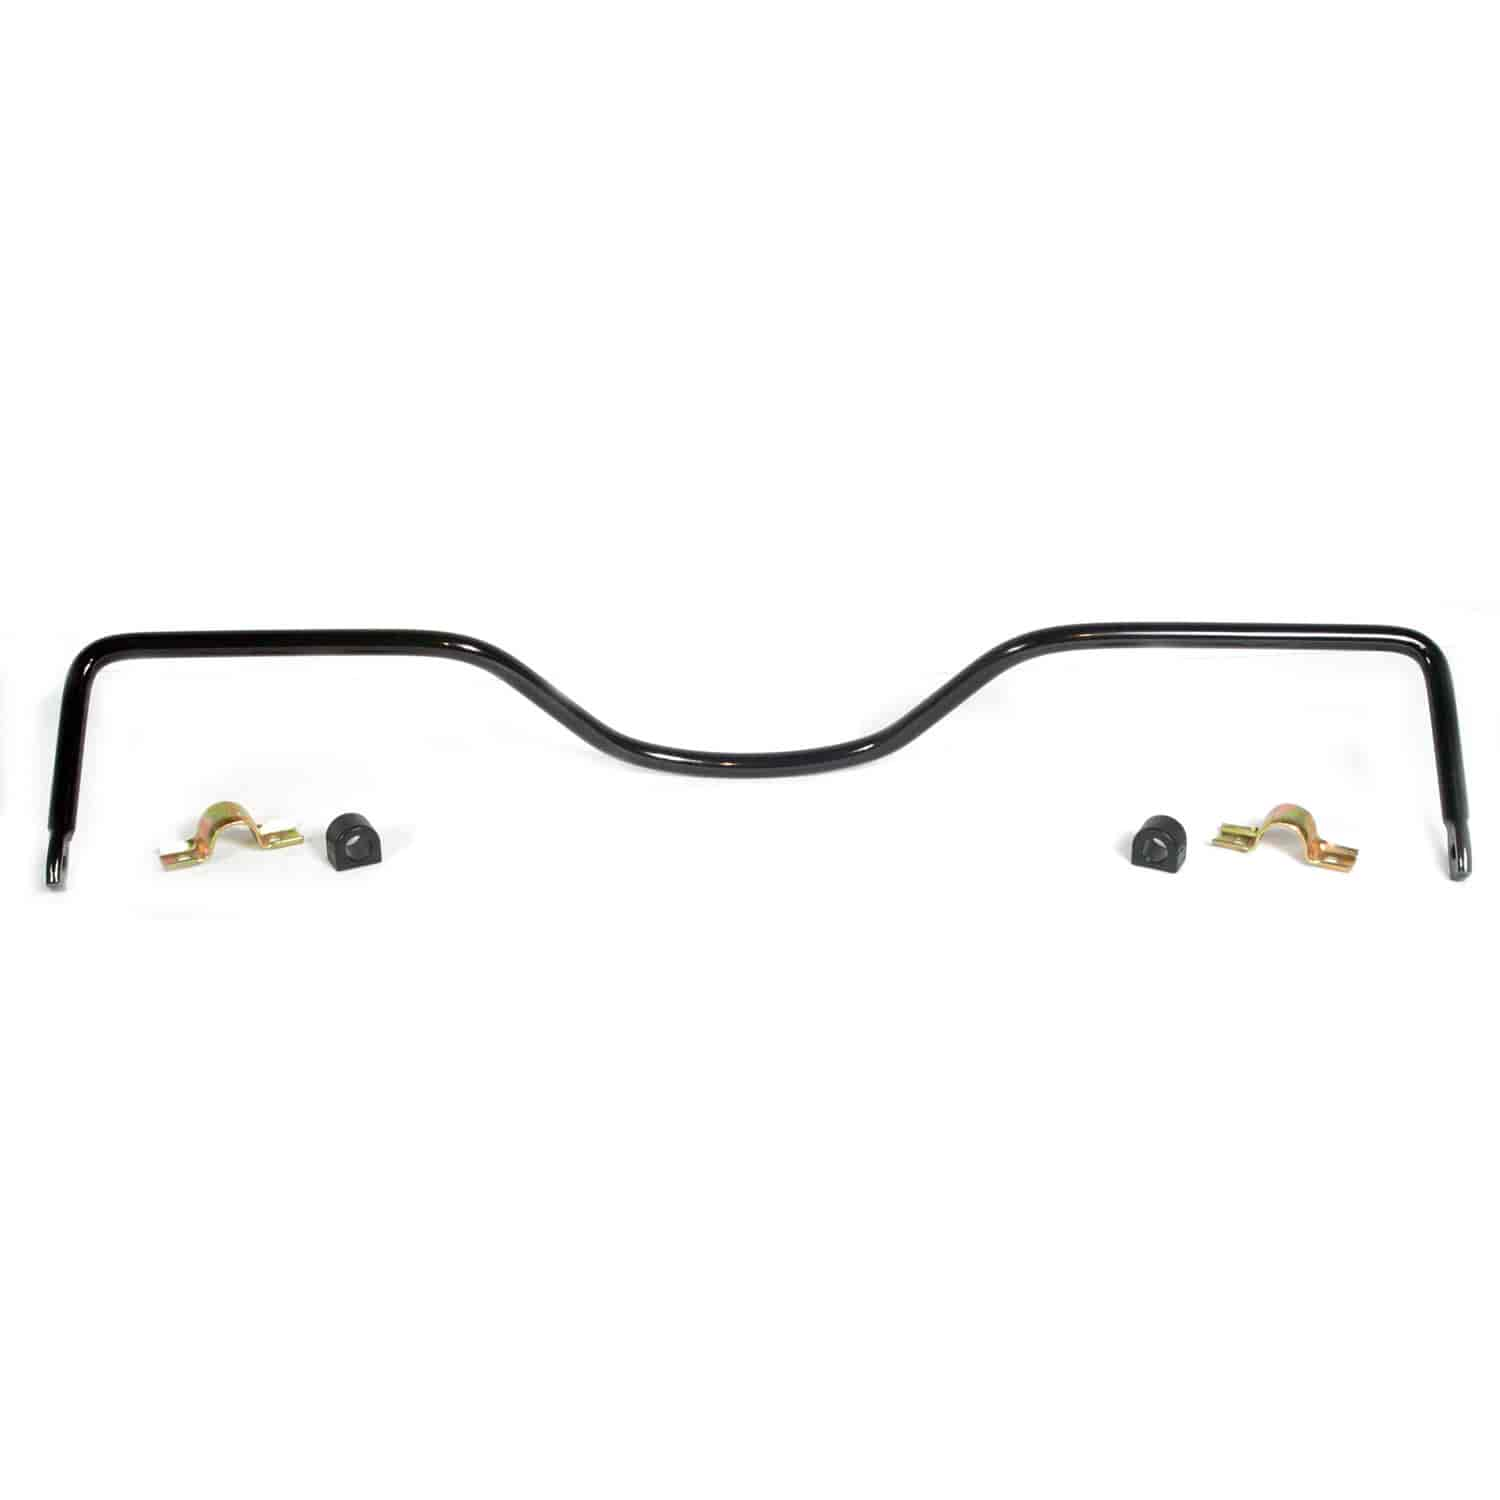 ADDCO 2321 - ADDCO Jeep Sway Bars